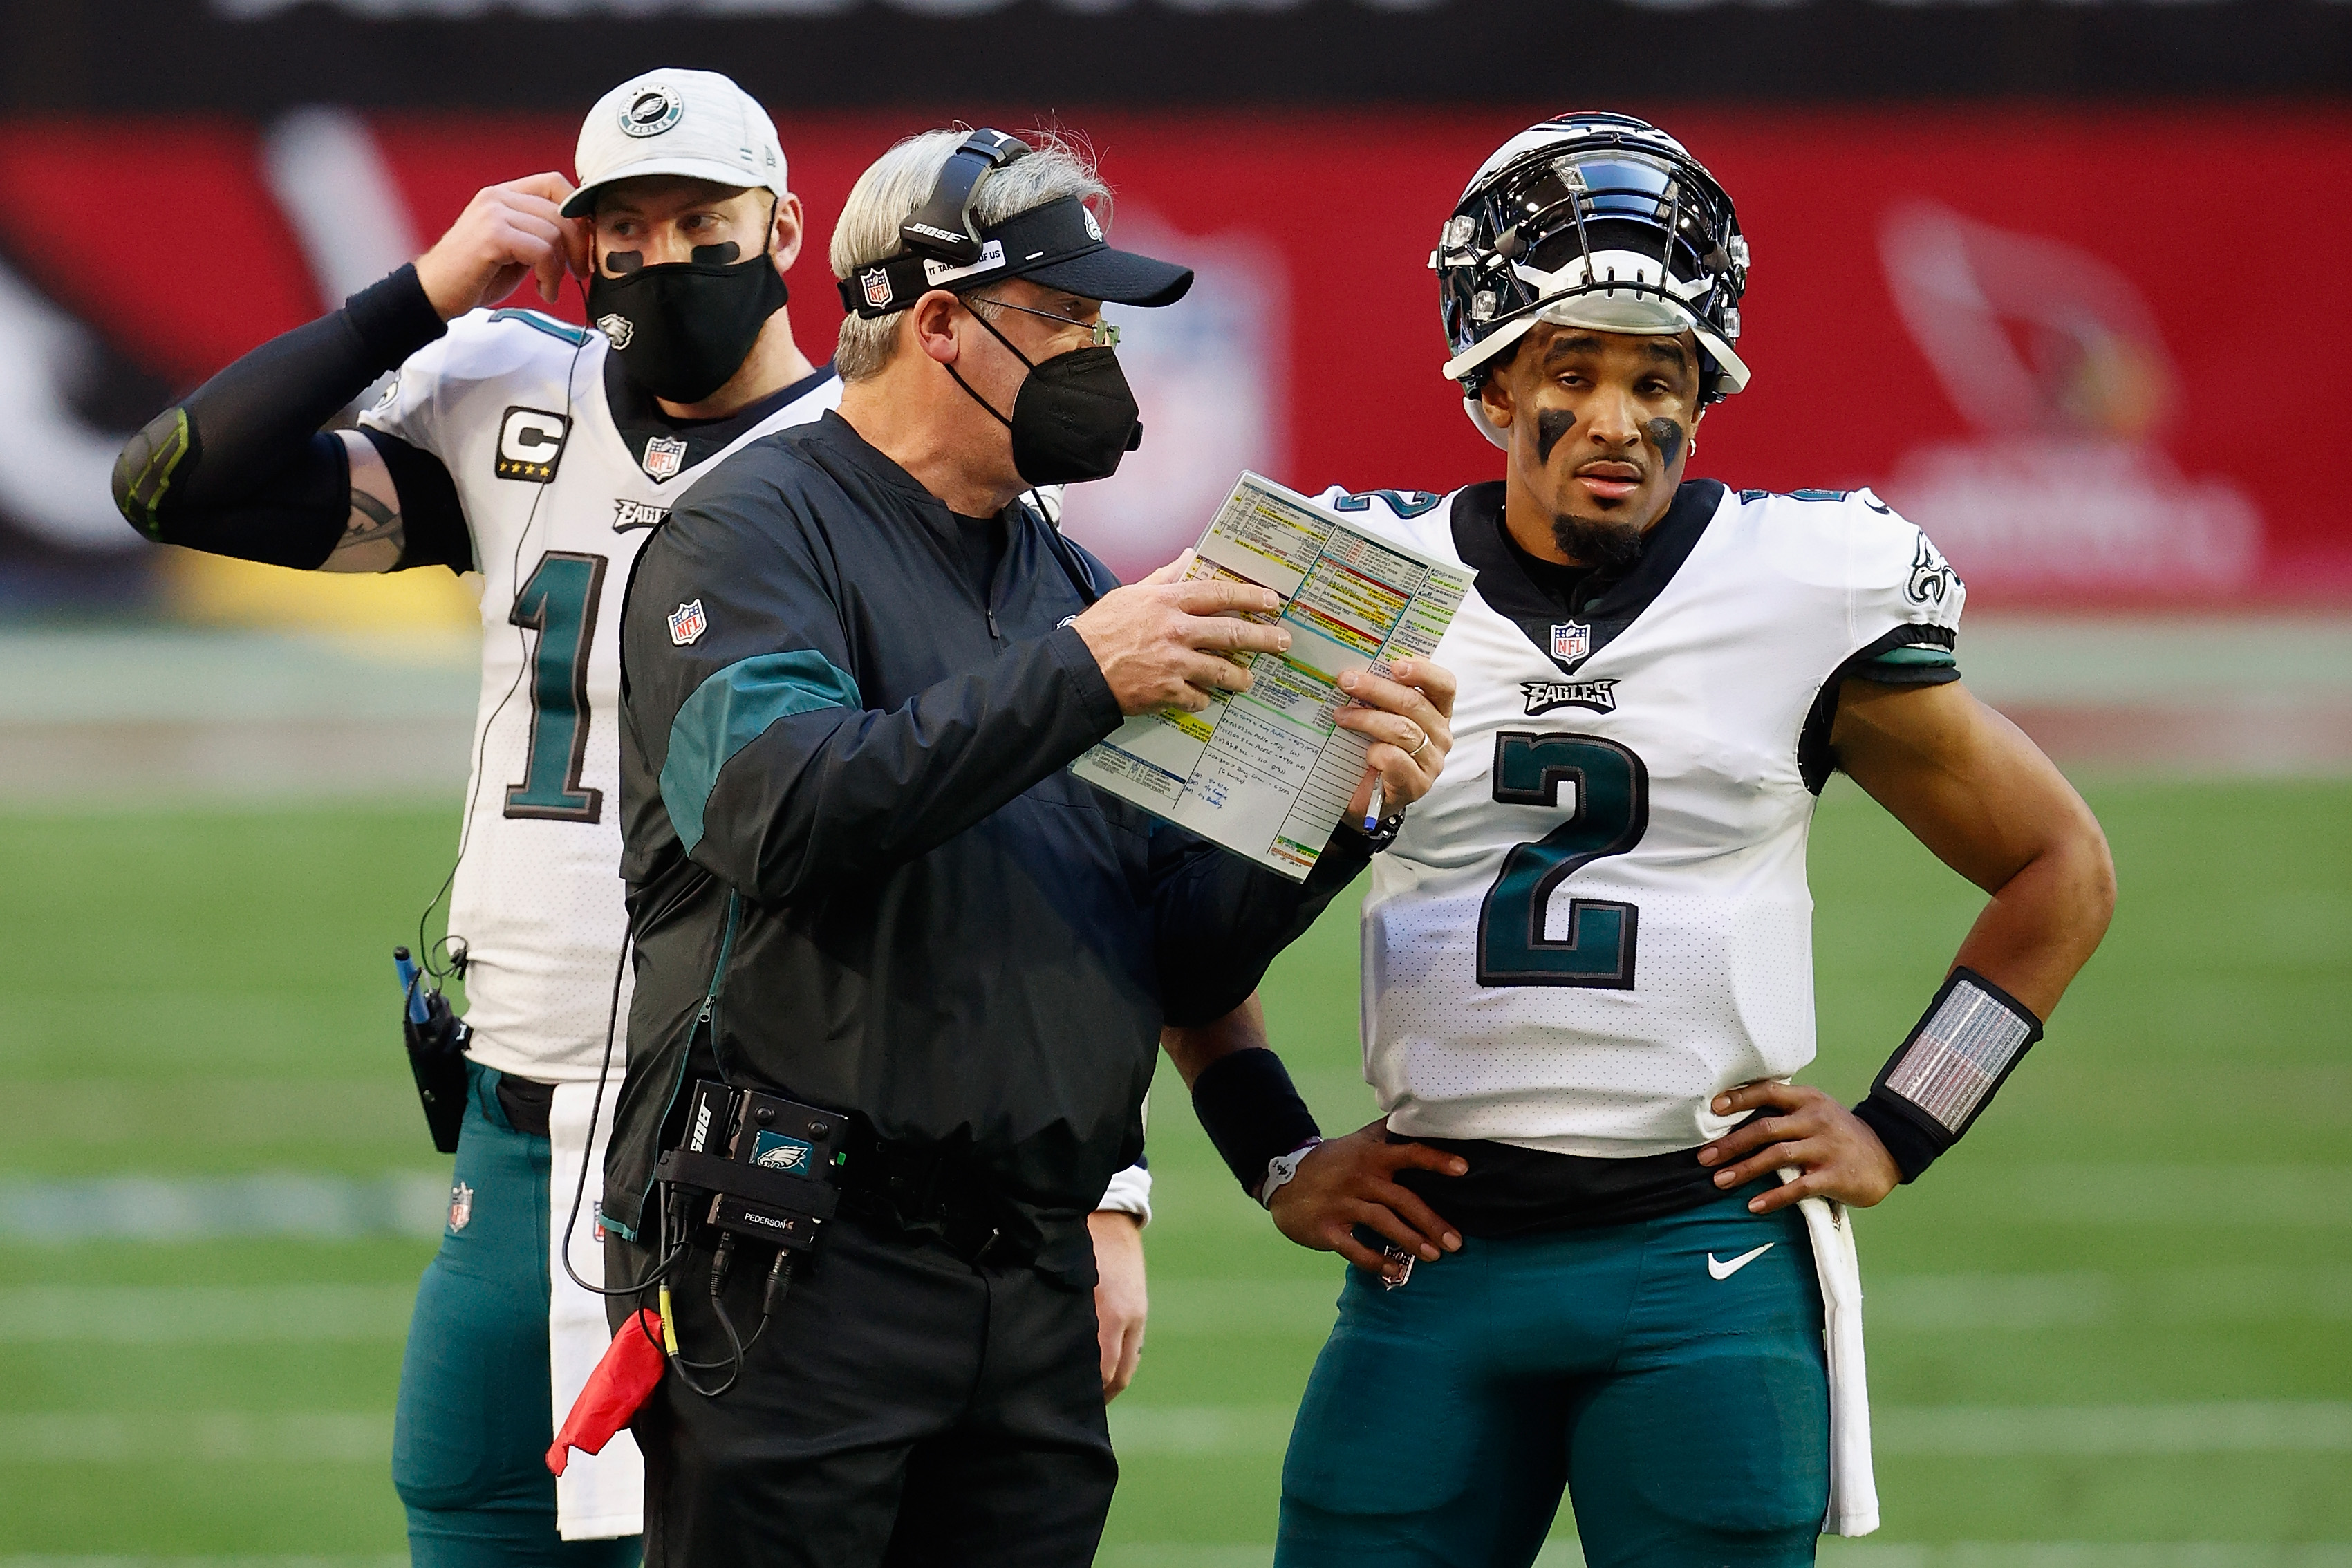 Even Doug Pederson's players aren't happy with him.